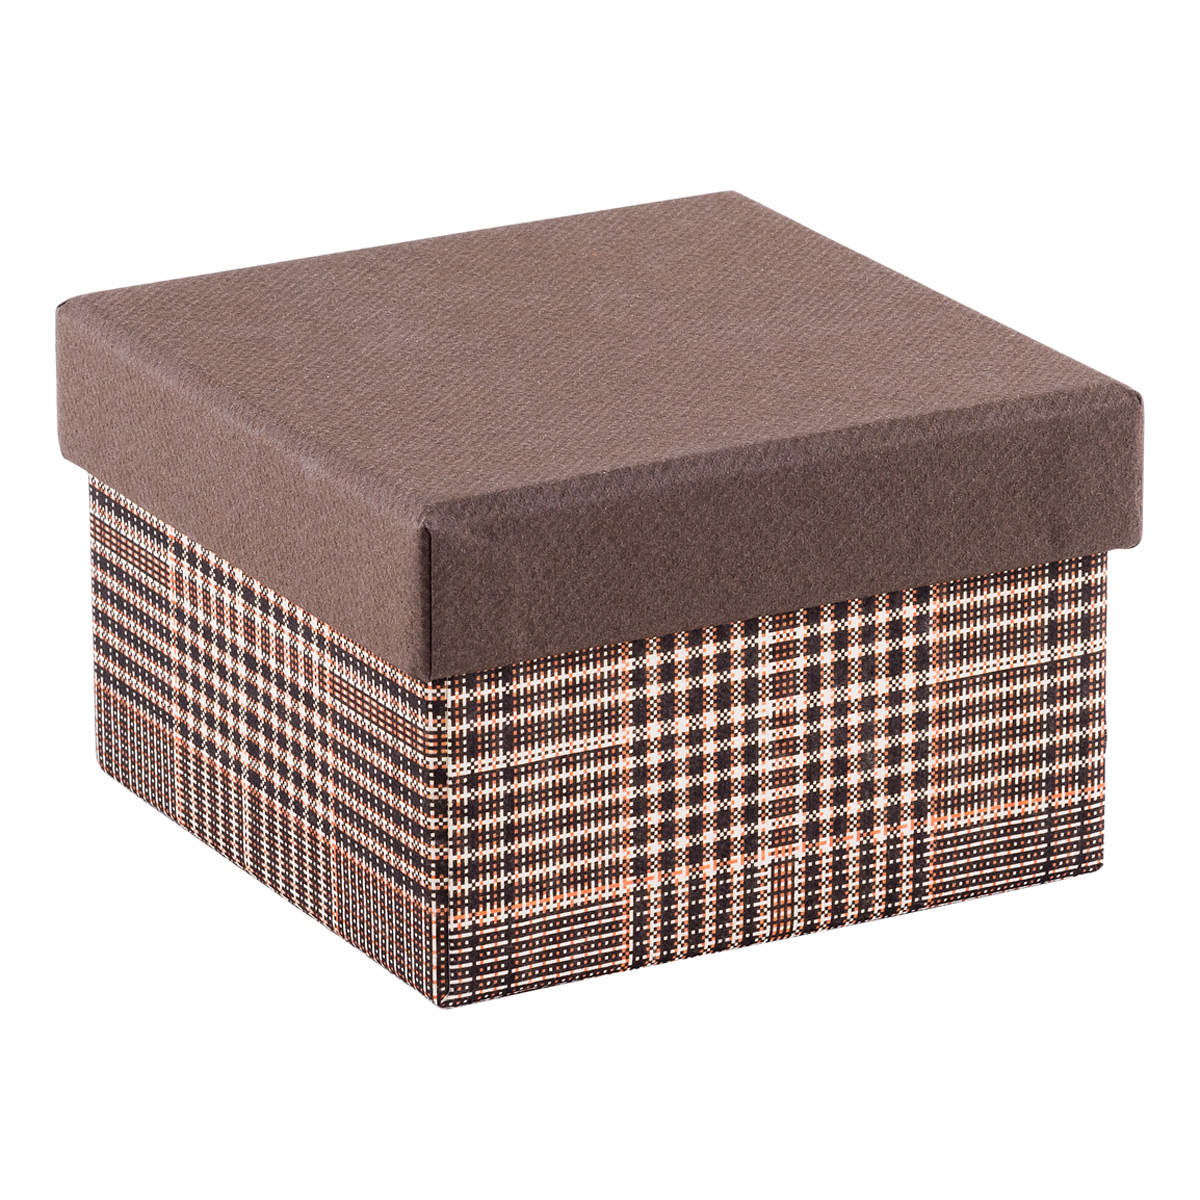 Gift Boxes Decorative BoxesGift Boxes With LidsThe